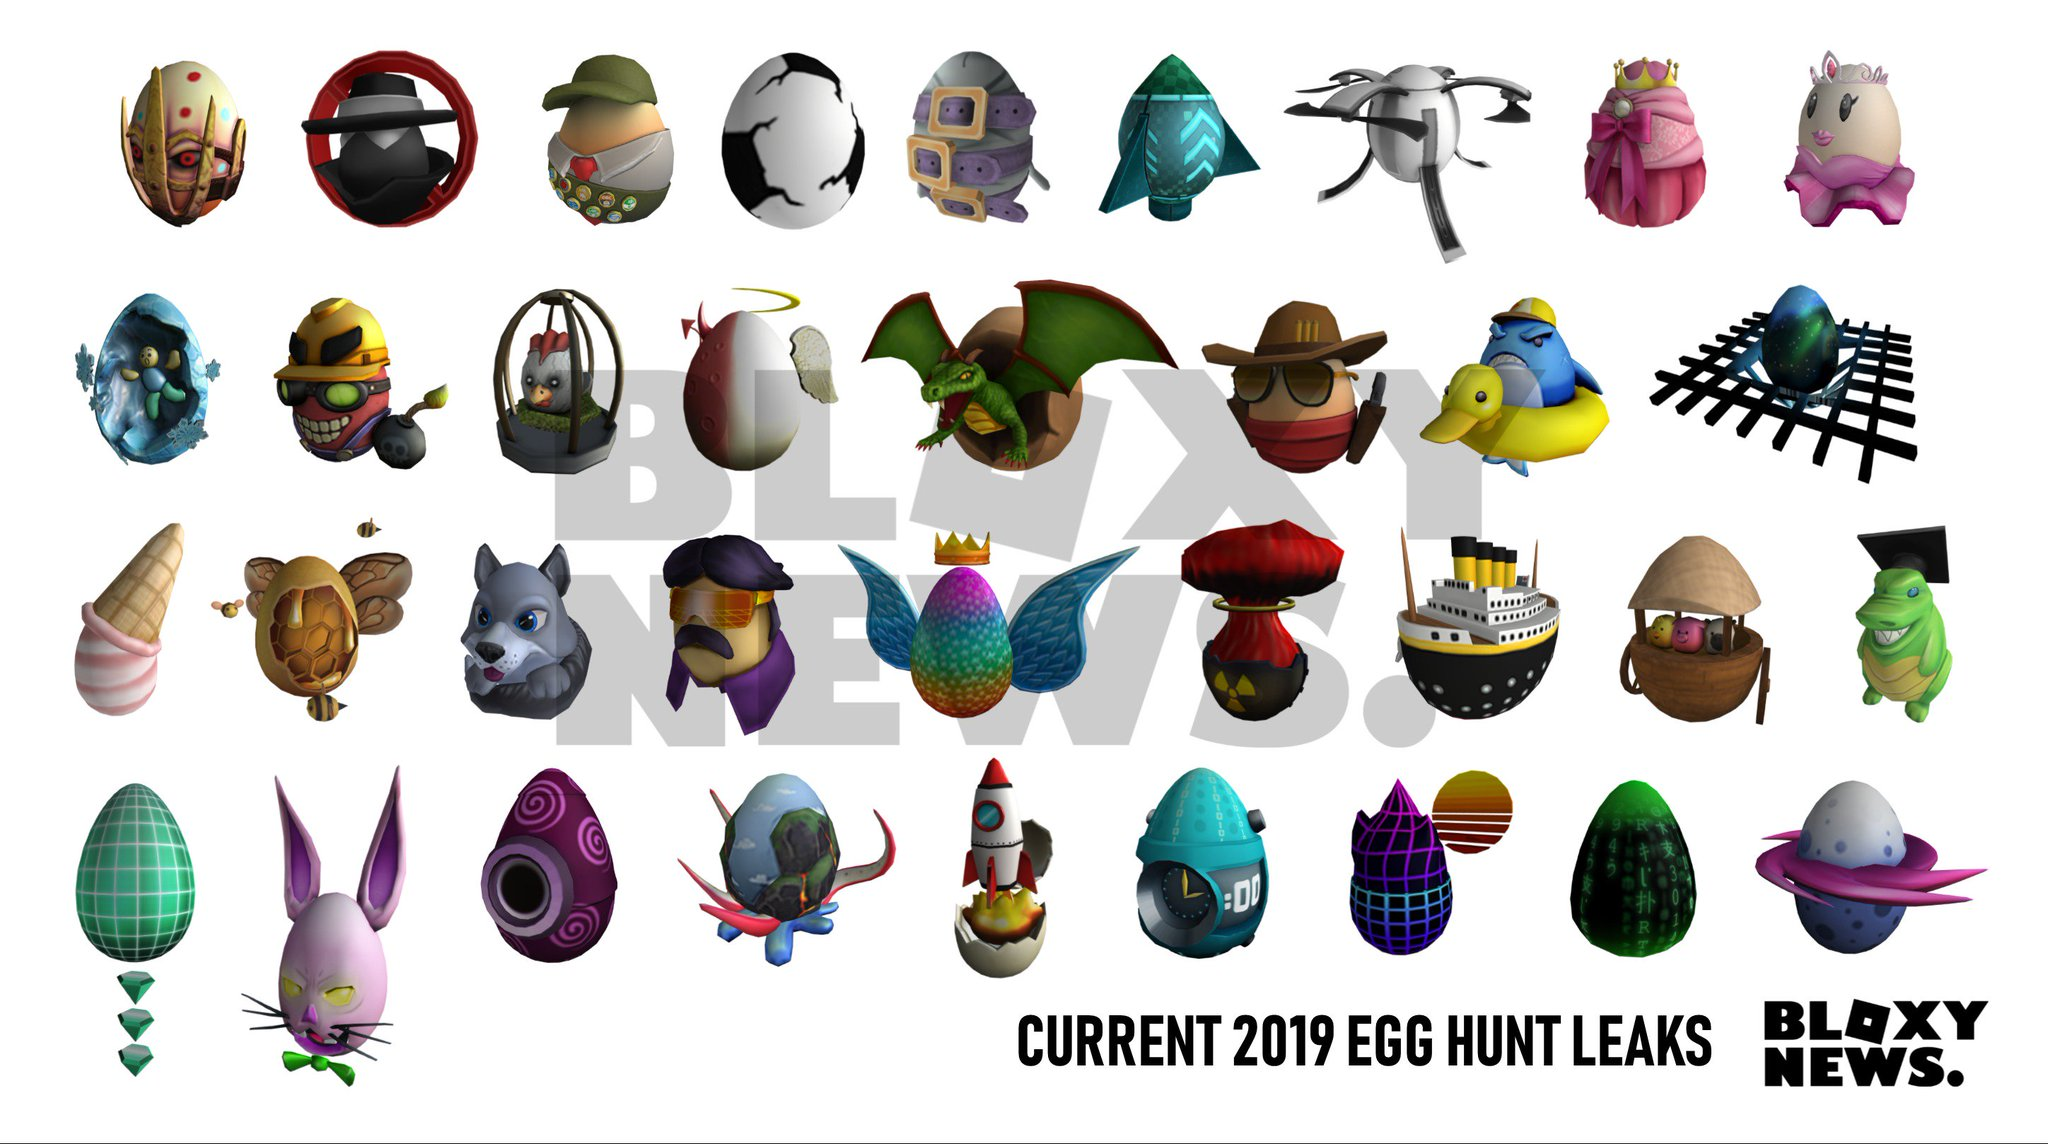 Eggs Being Leaked Egg Hunt 2019 Leaks Roblox - Bloxy News On Twitter Bloxynews All 2019 Roblox Egg